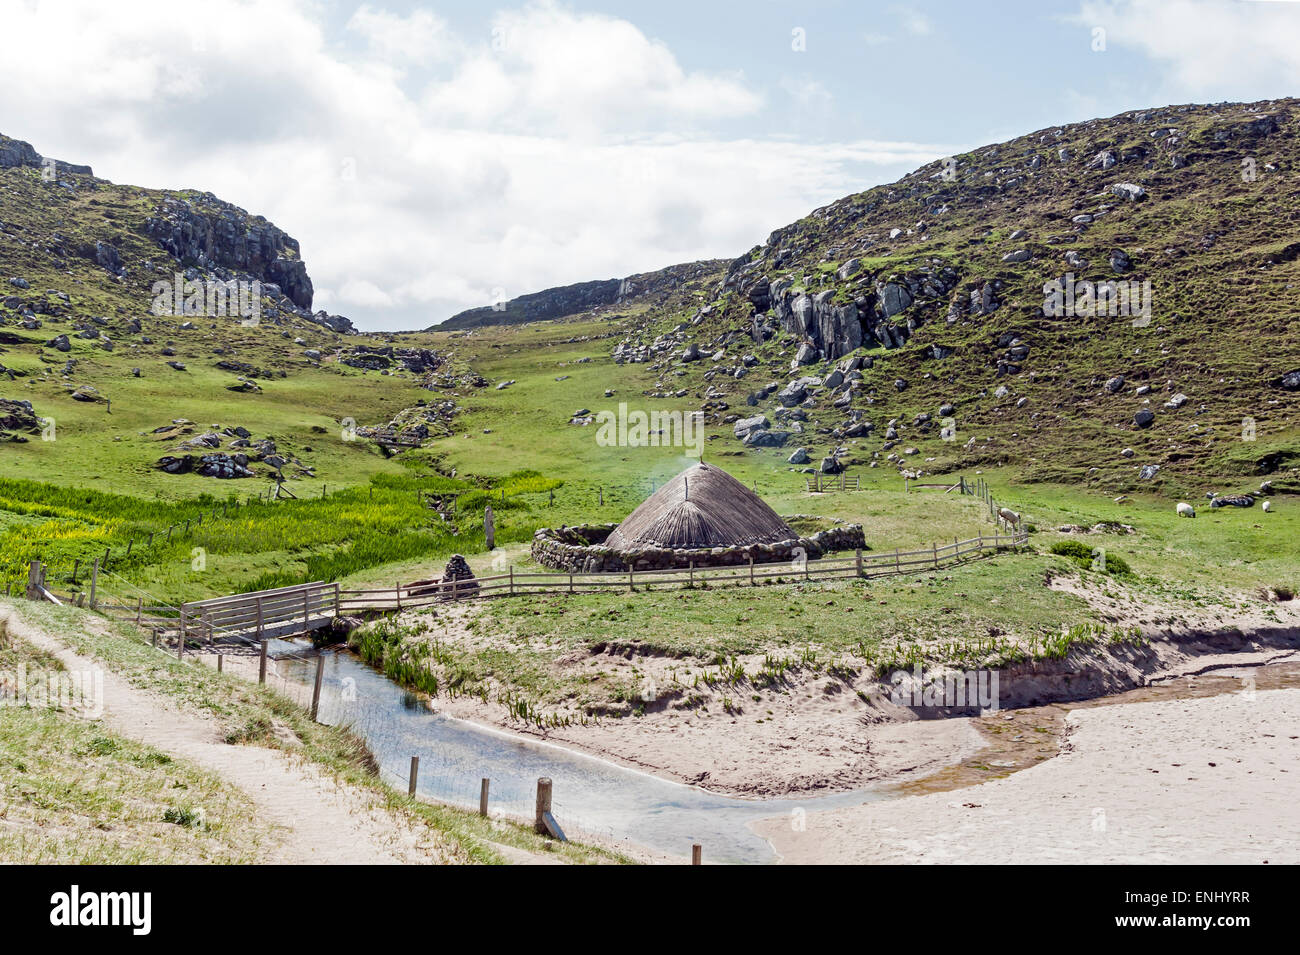 Reconstructed Iron Age House at Bostadh beach on the west coast of the Isle of Lewis in the Outer Hebrides Scotland - Stock Image